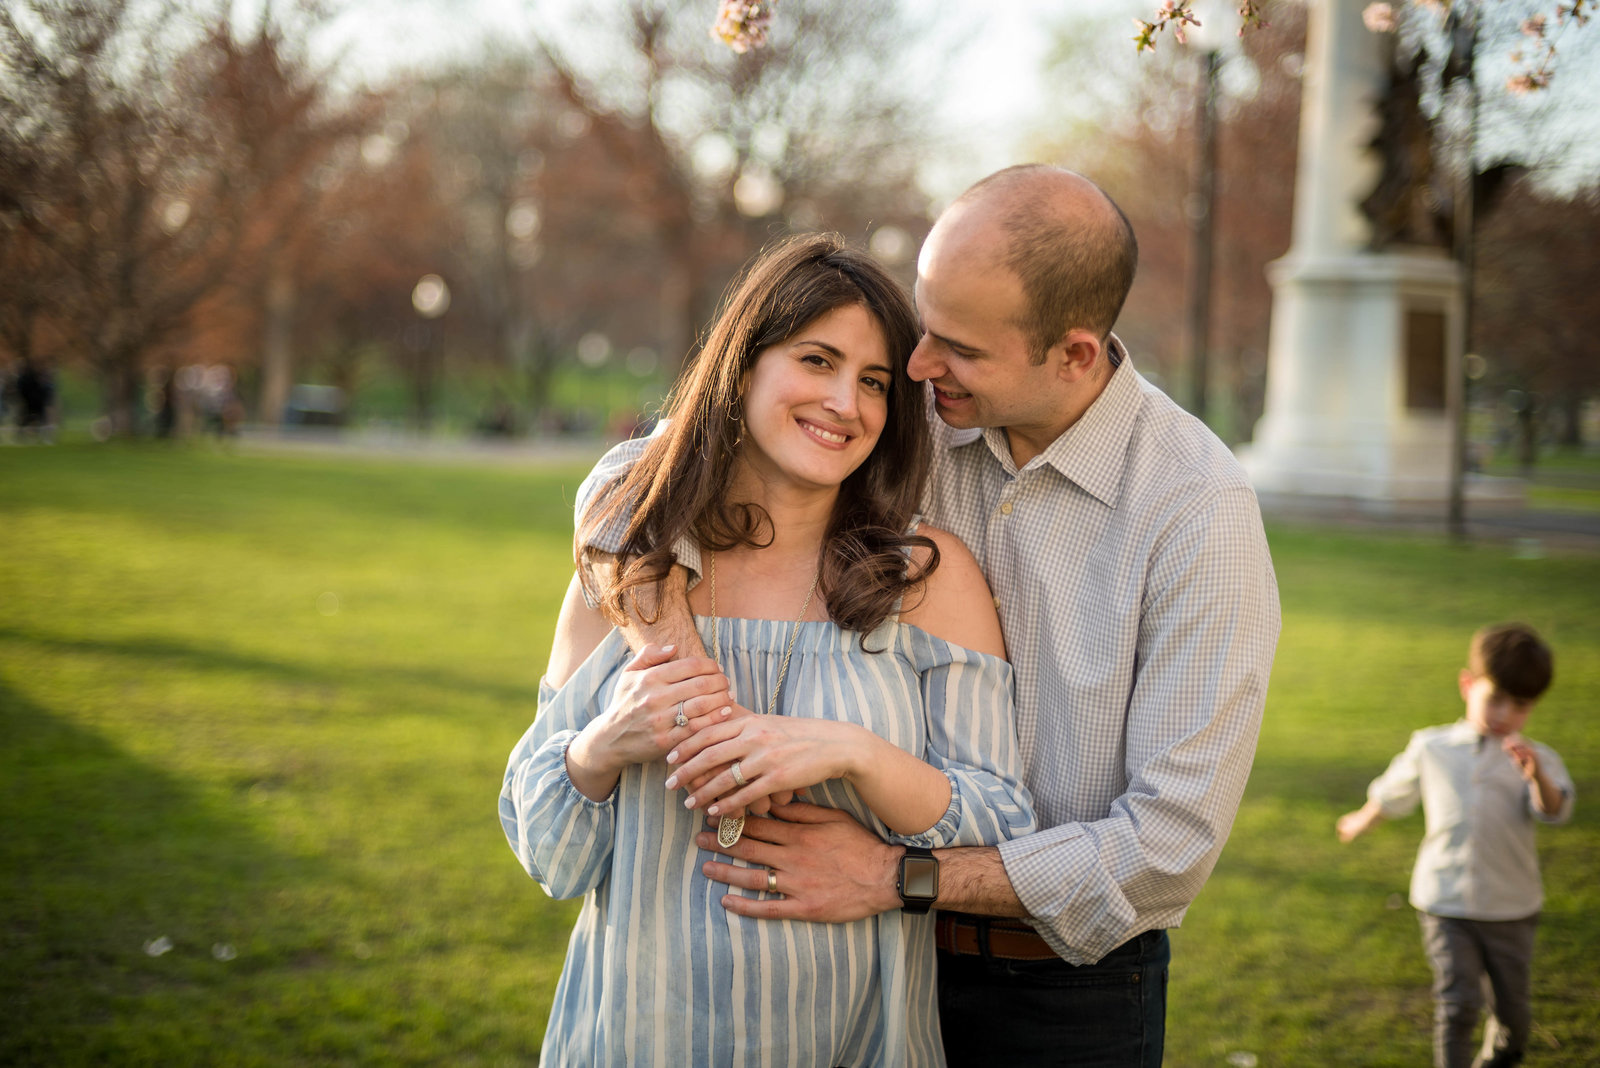 boston commons maternity session at sunset